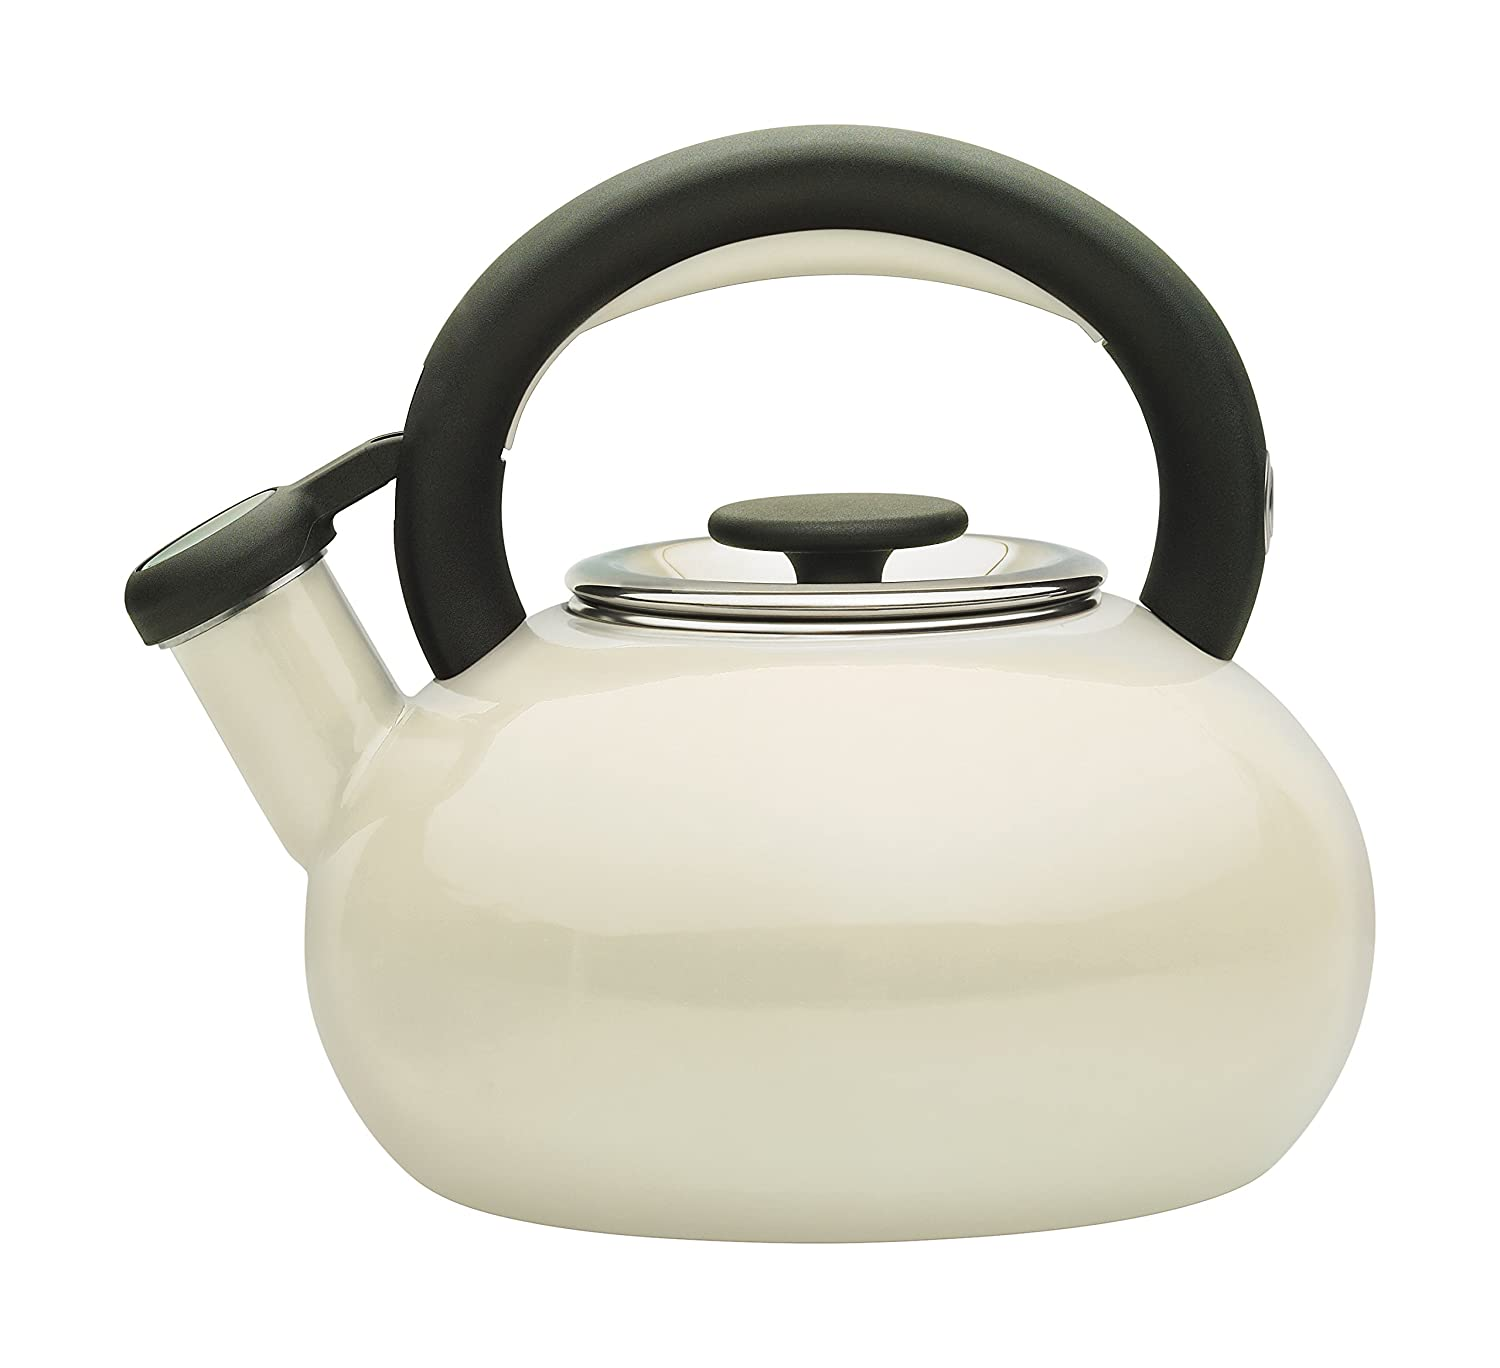 prestige enamel  litre retro stove top kettle  almond amazon  - prestige enamel  litre retro stove top kettle  almond amazoncoukkitchen  home